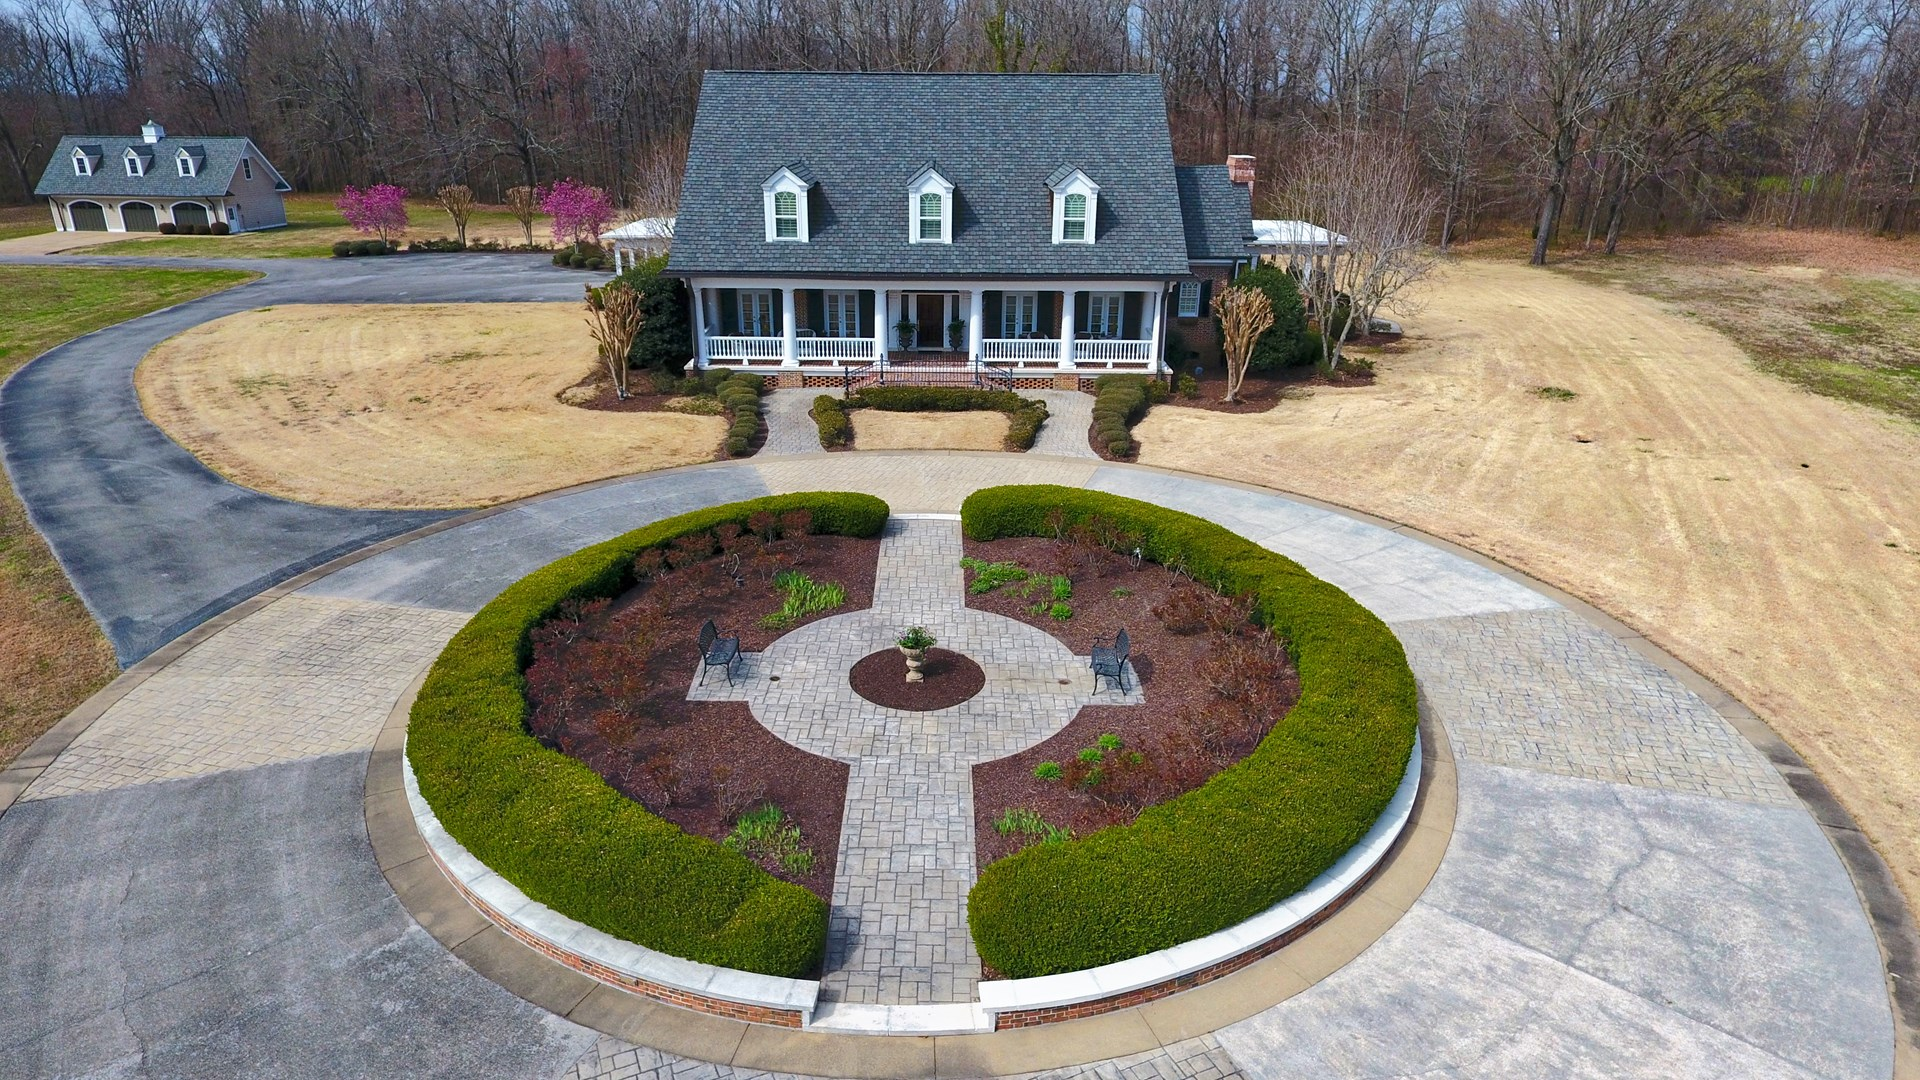 Jackson TN 30 AC Estate for Sale Near USJ & Trinity Schools